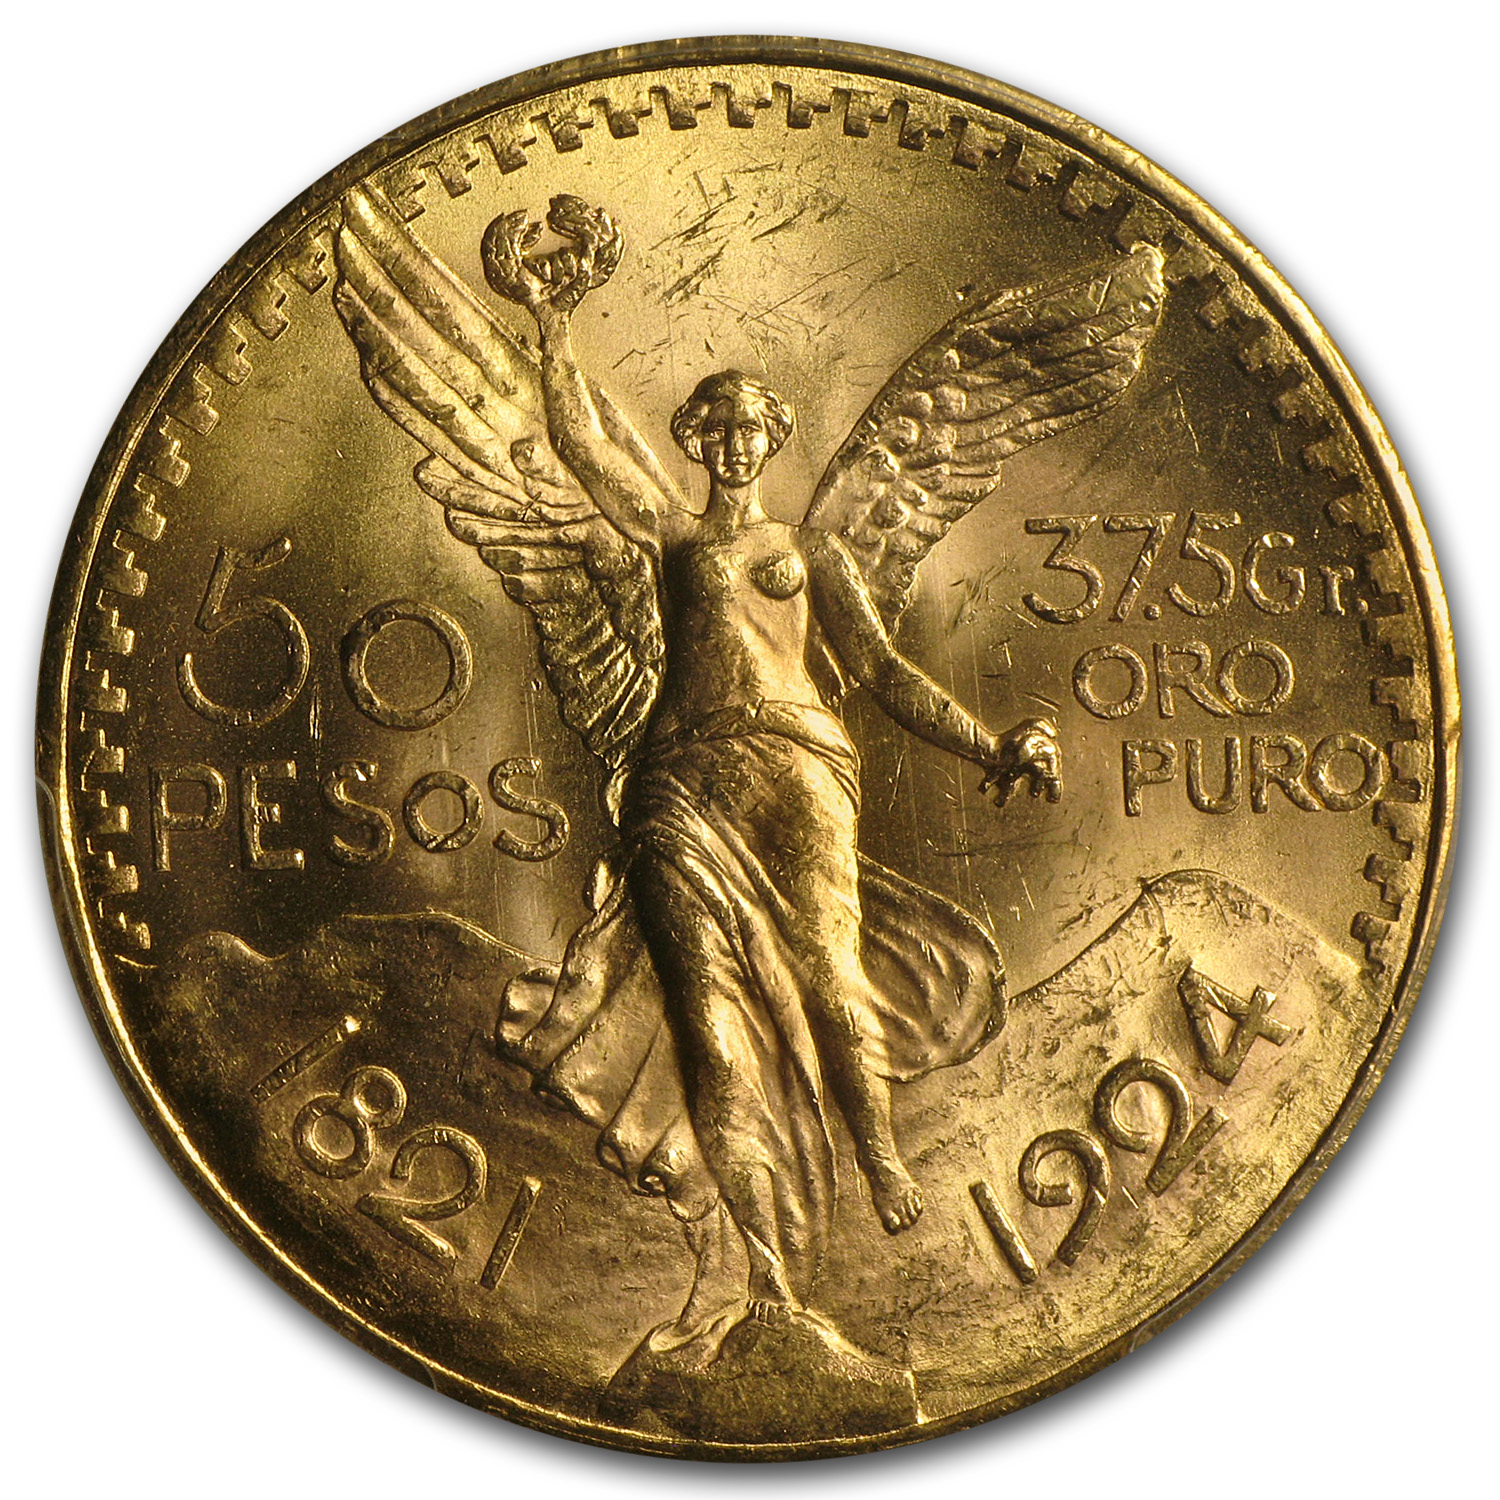 Mexico 1924 50 Pesos Gold Coin - MS-64 PCGS (Secure Plus!)